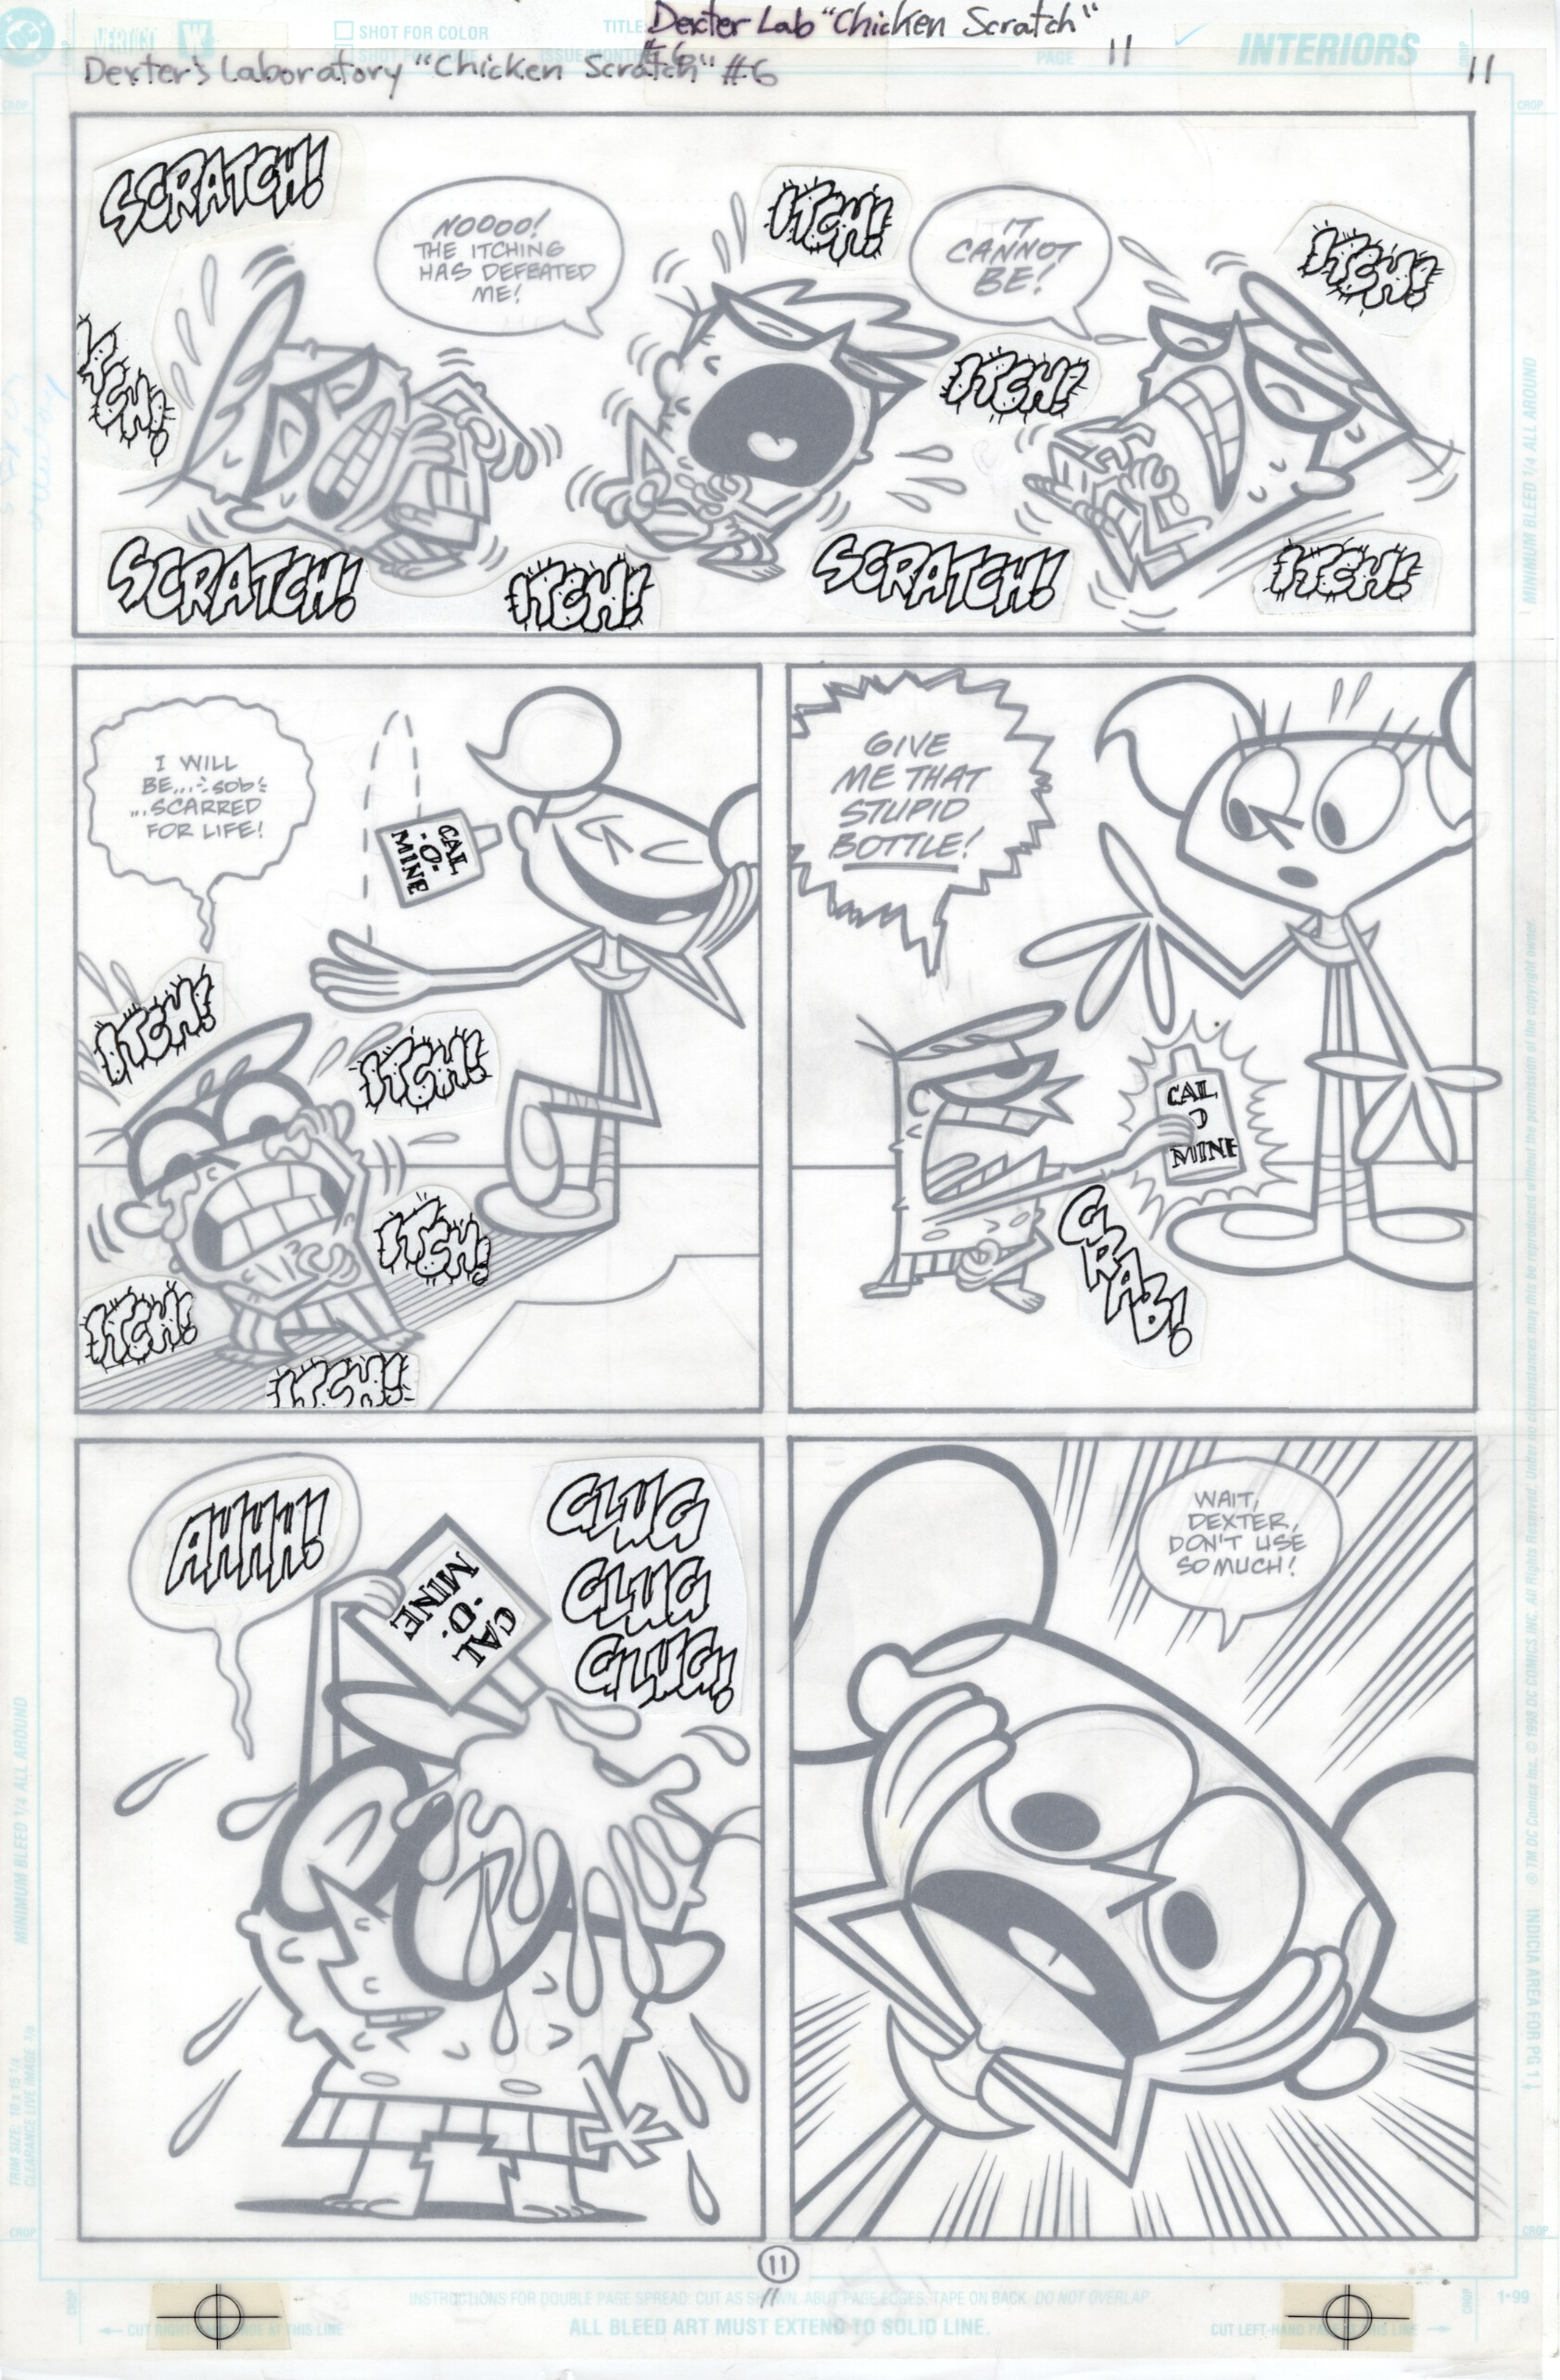 Dexter's Laboratory #6 page 11, Original art by Bill Wray for DC Comics, 2000